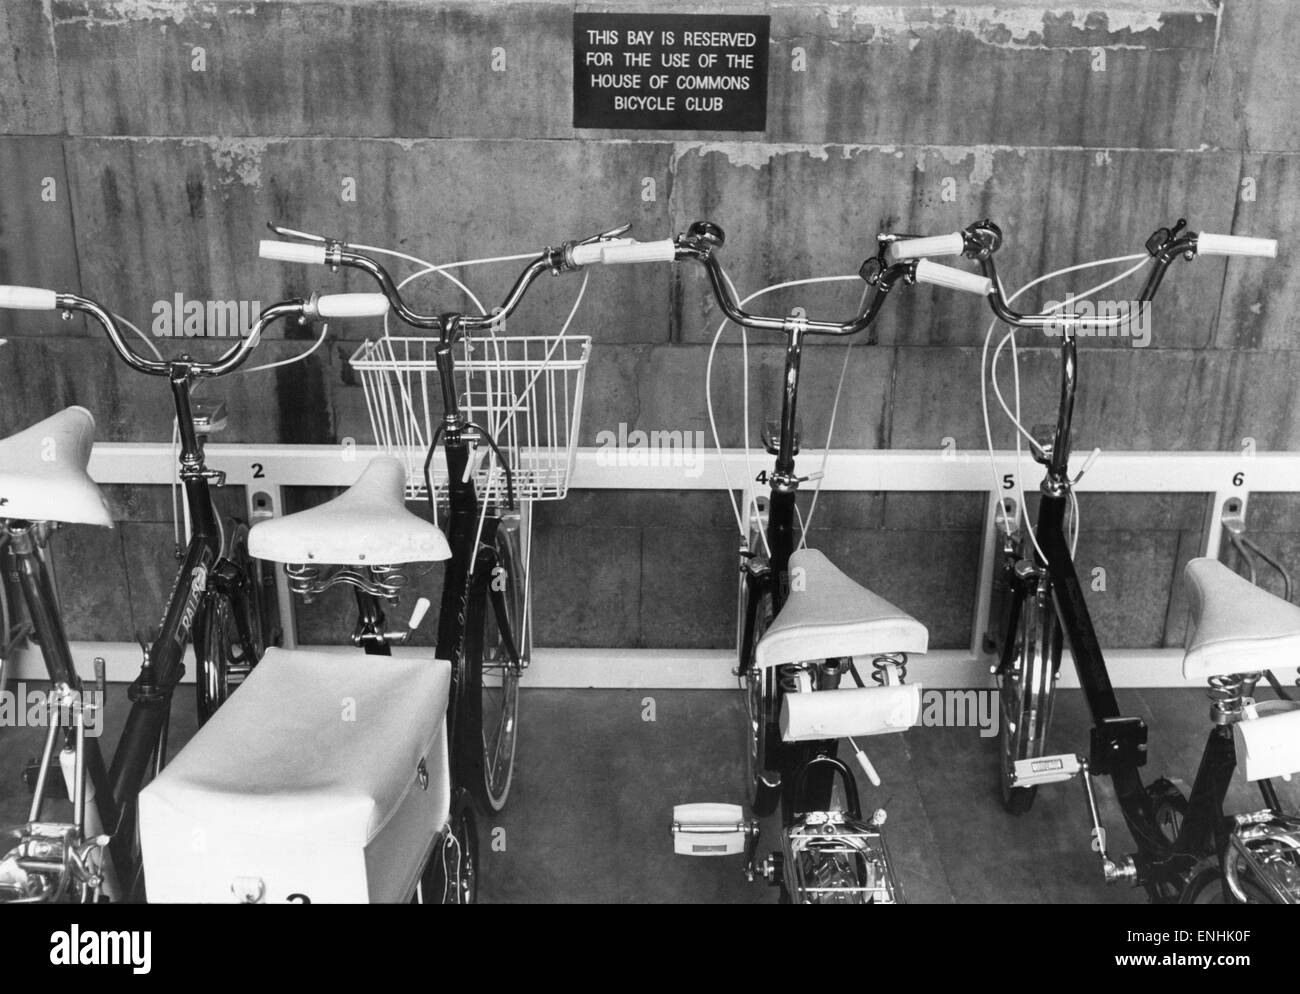 Britain's members of Parliament moved in to a new age on Wednesday (13-7-77) - the age of the bicycle. At least - Stock Image